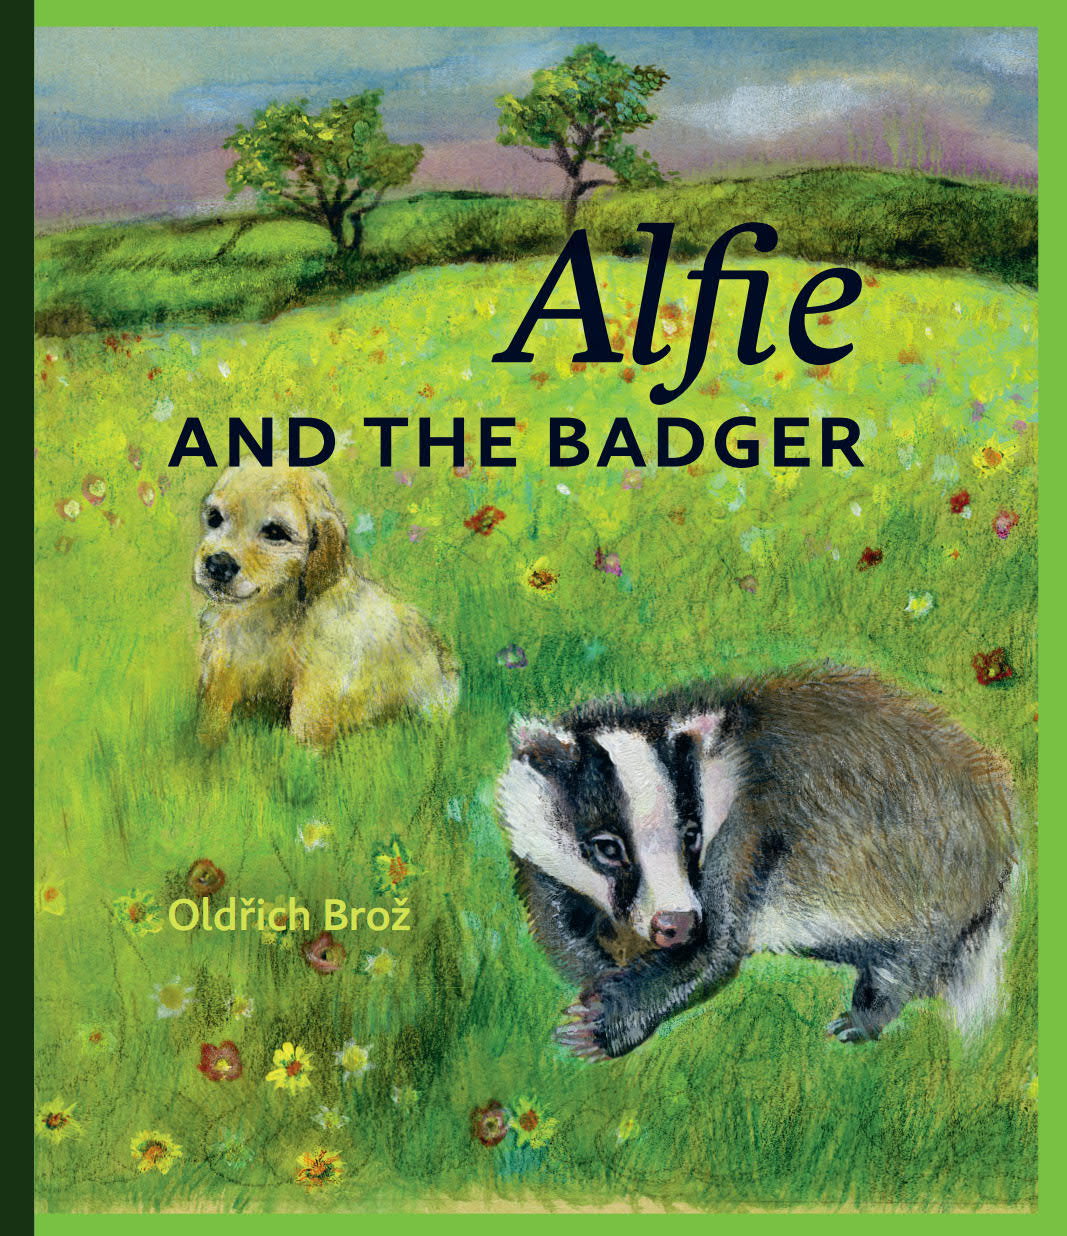 Alfie and the Badger